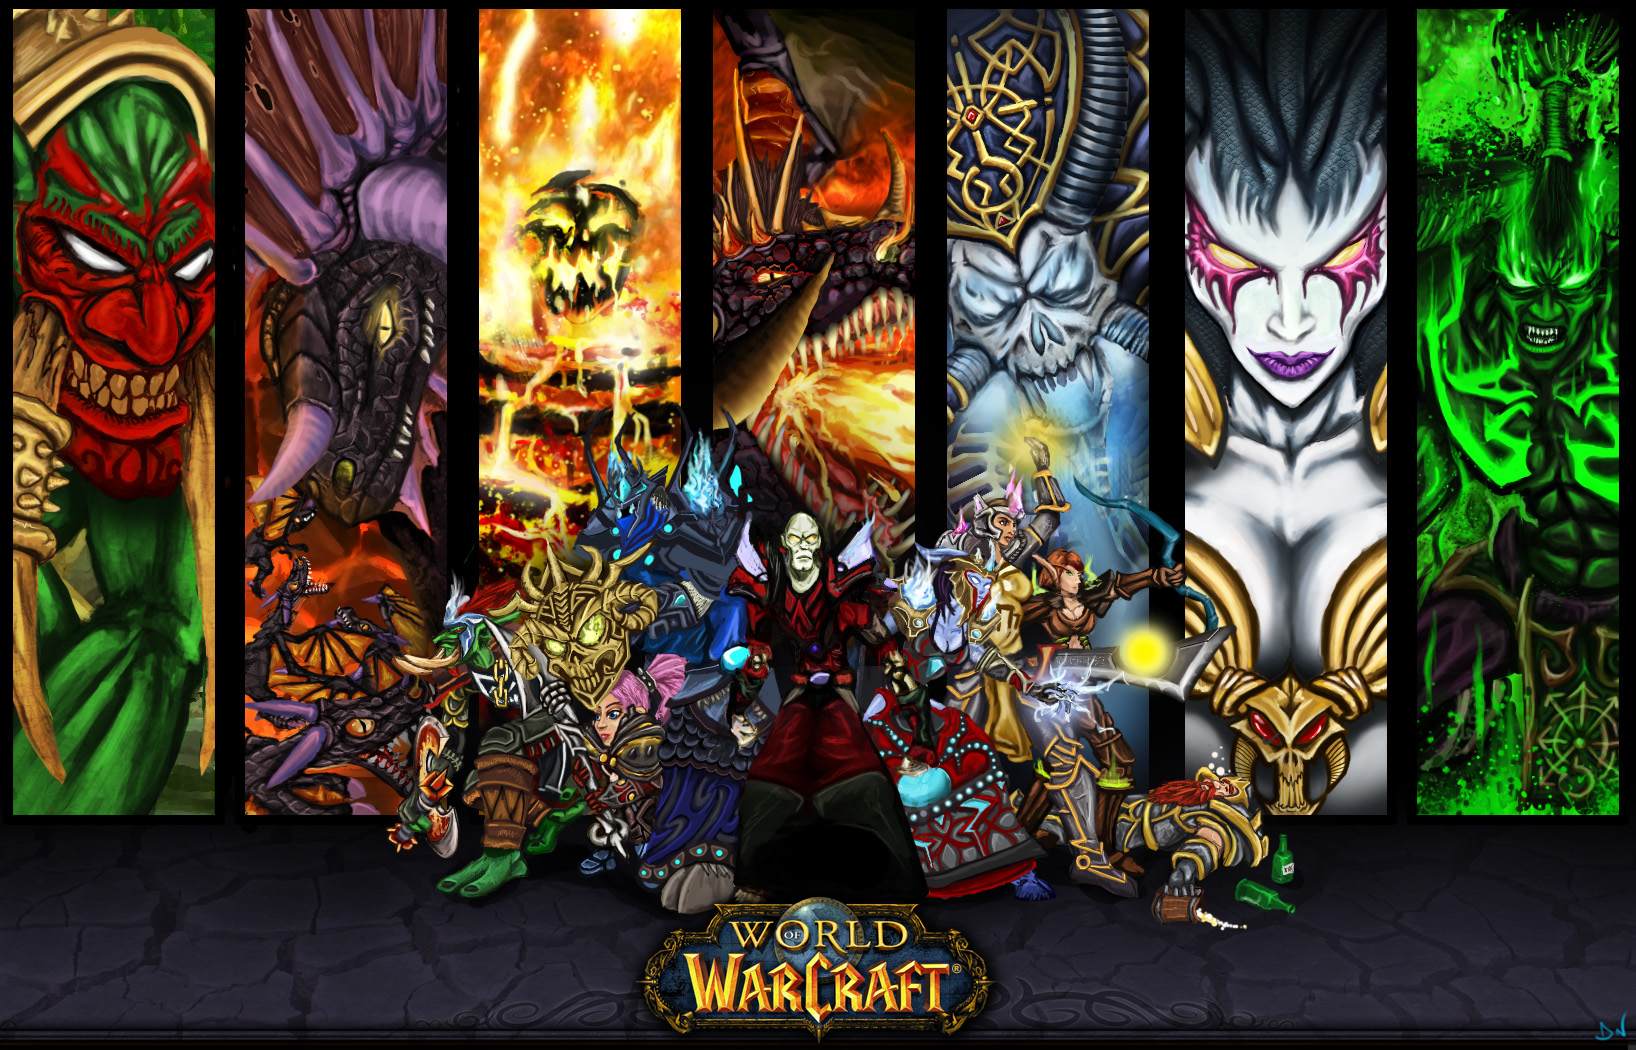 World of Warcraft Exclusive HD Wallpapers 2150 1636x1050